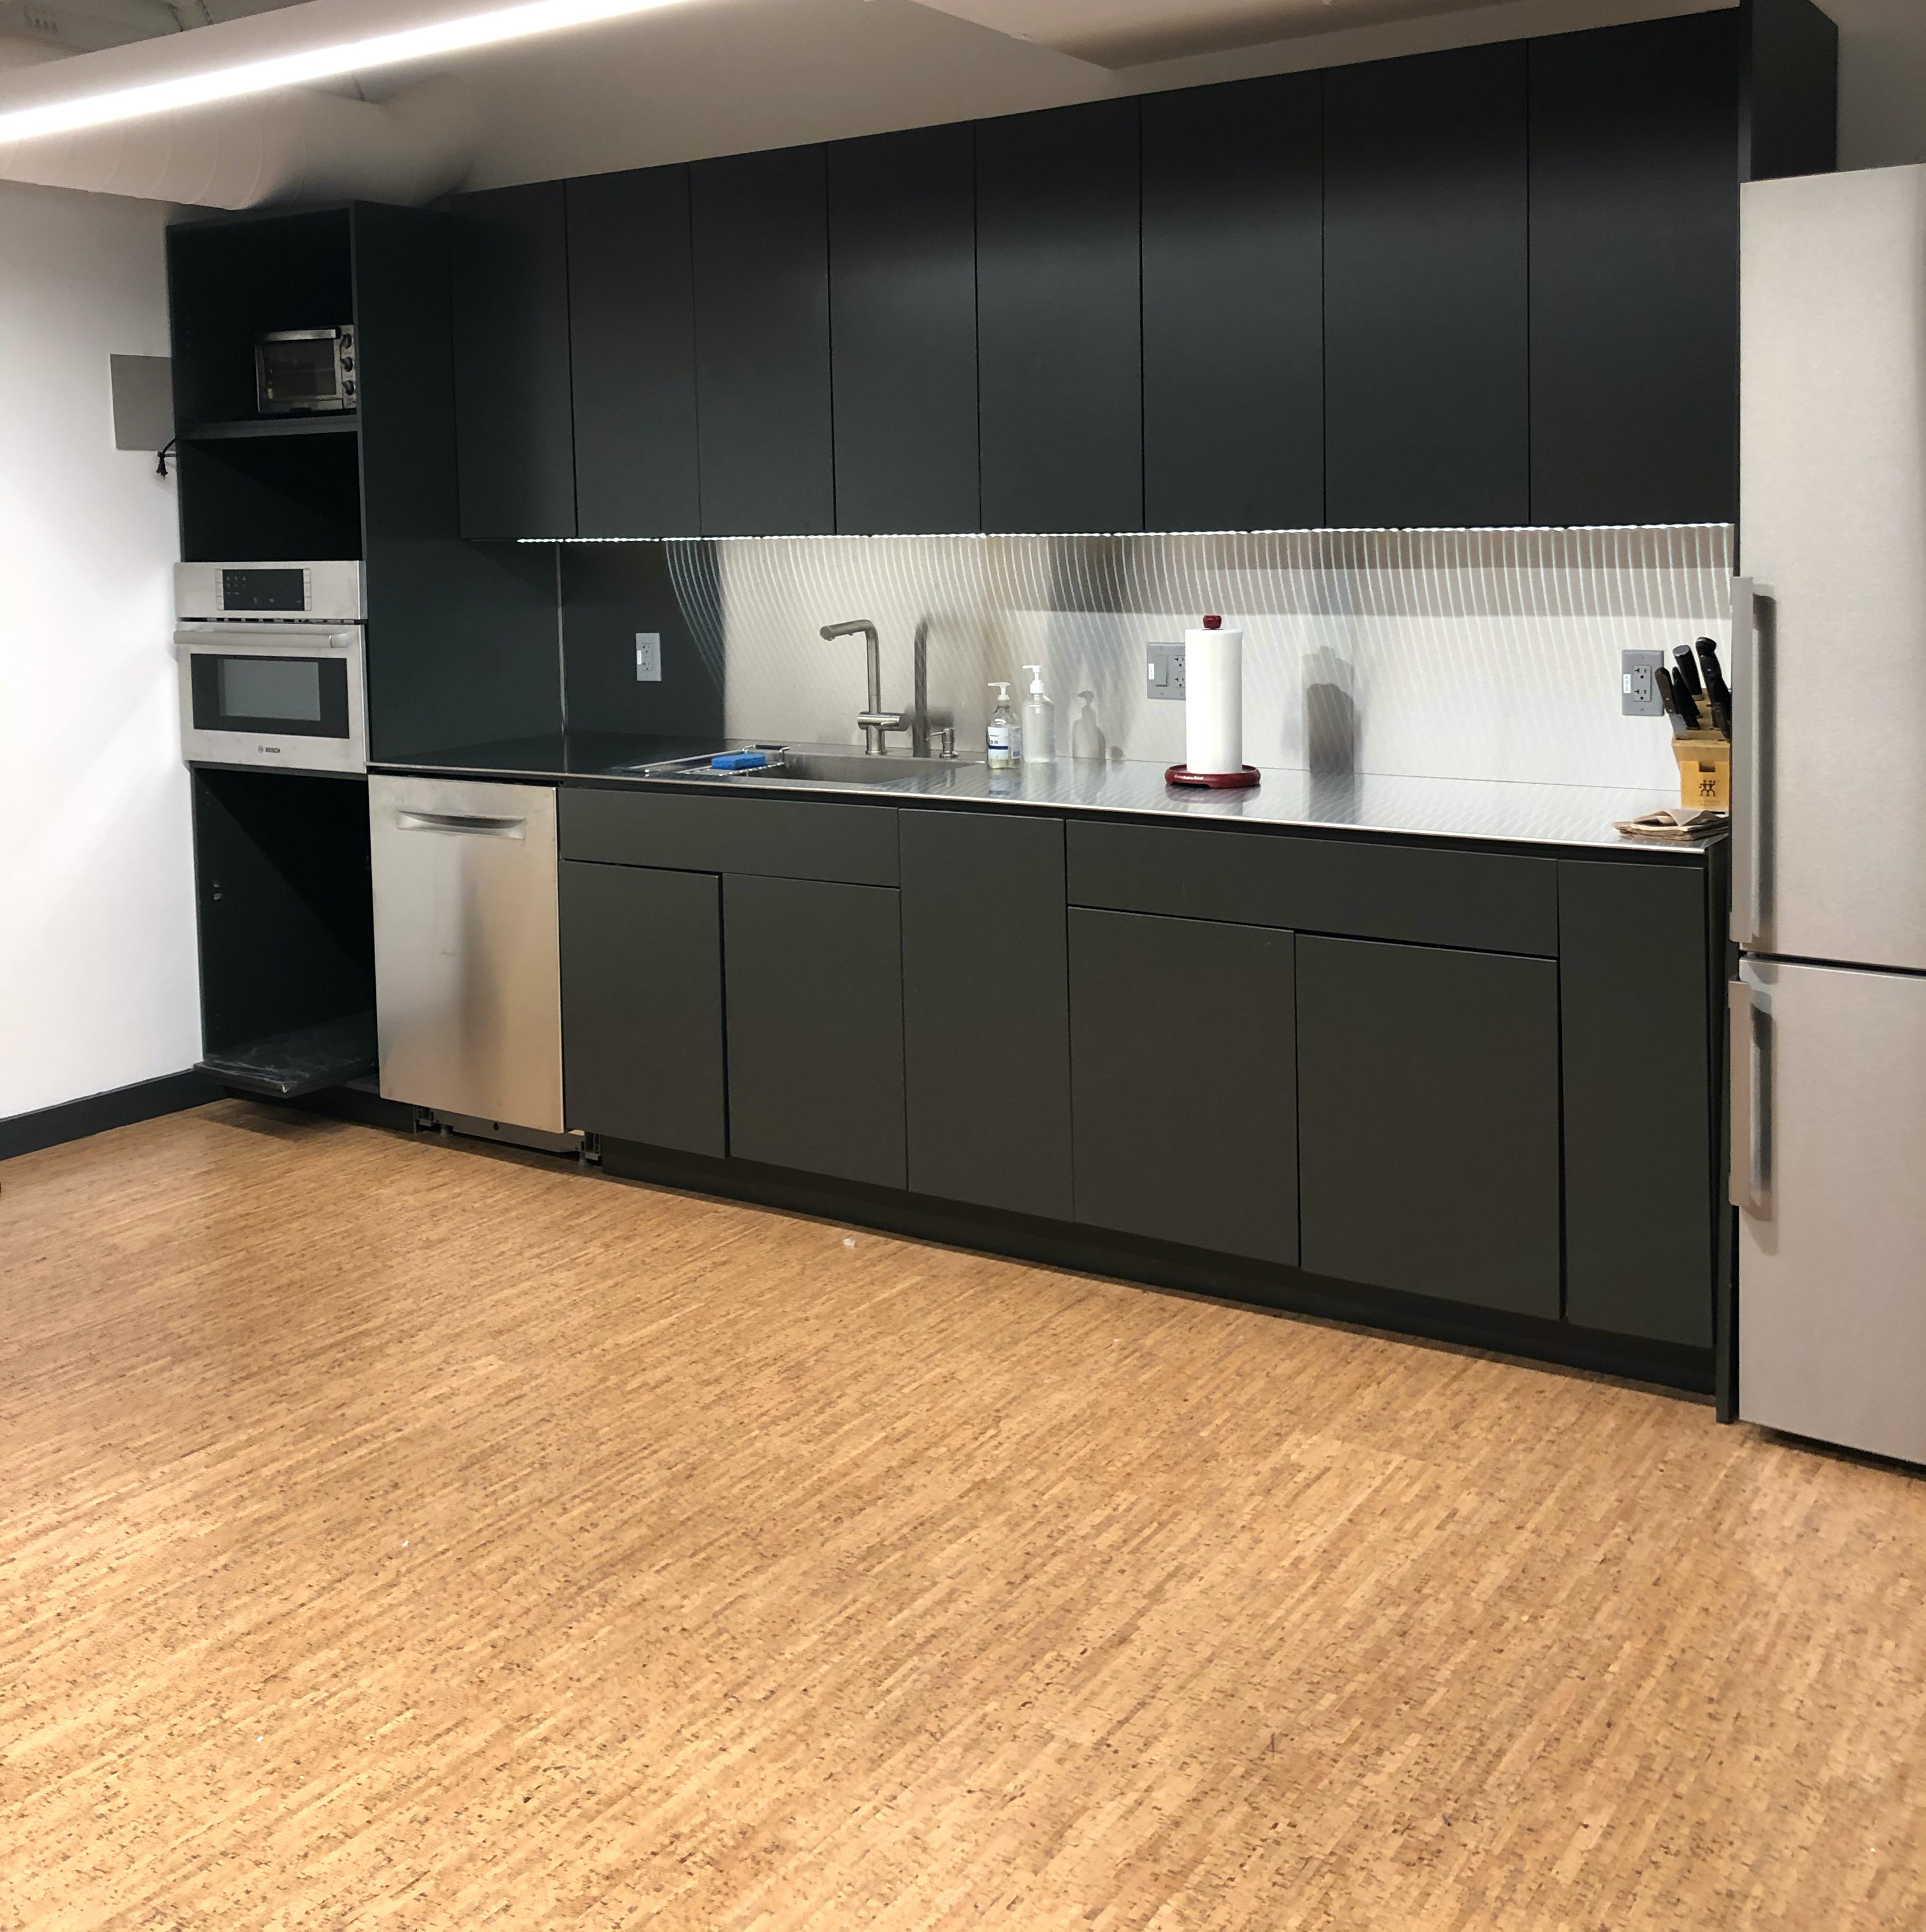 Avant Garde - Canyon - Office Kitchen Space